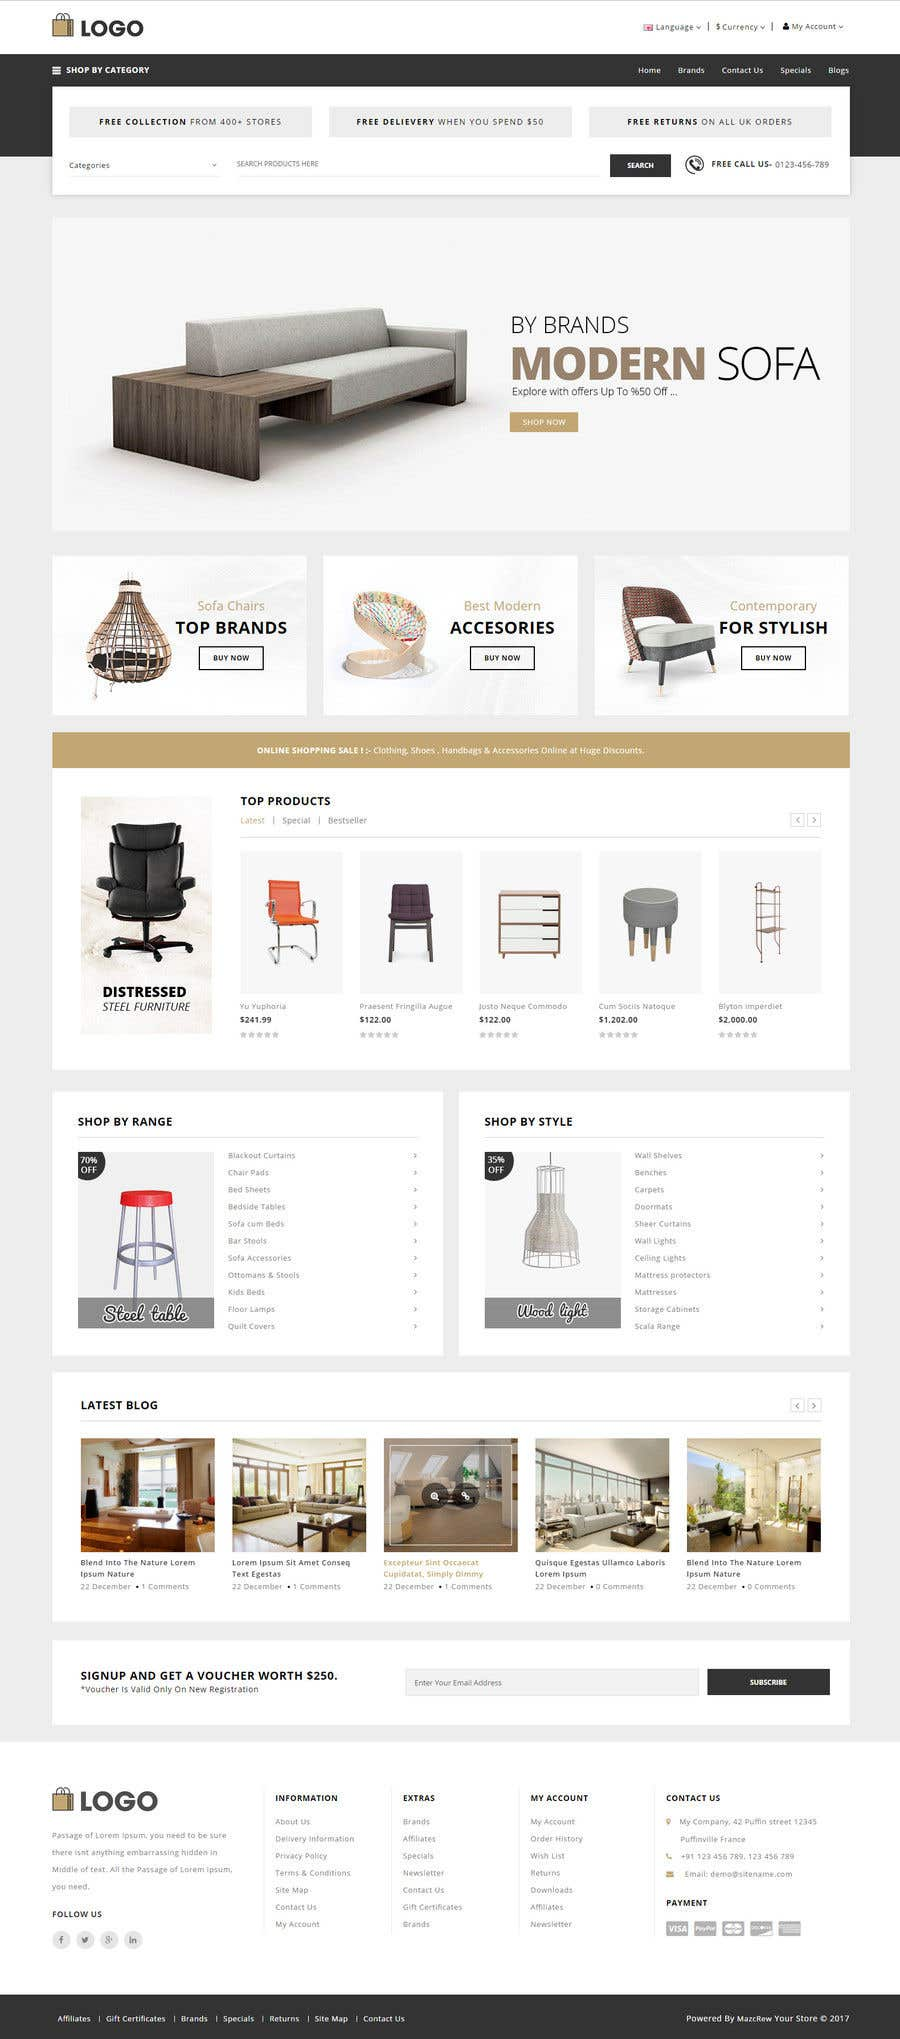 Contest Entry 9 For Design A Website Mockup An Office Furniture Supply